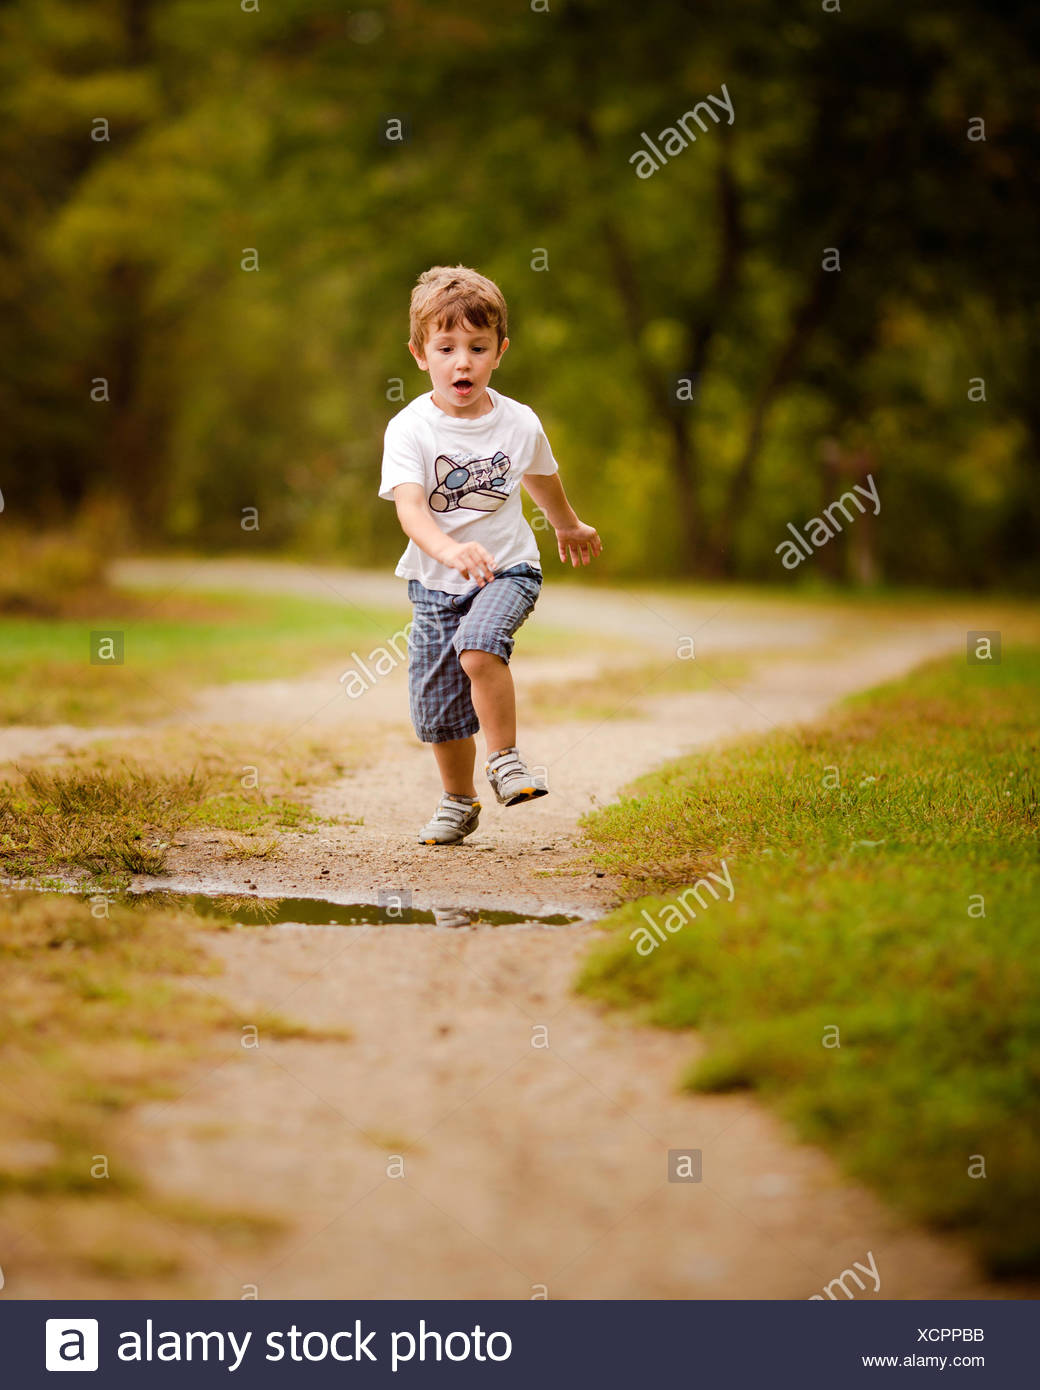 Boy running along footpath about to jump over a puddle - Stock Image